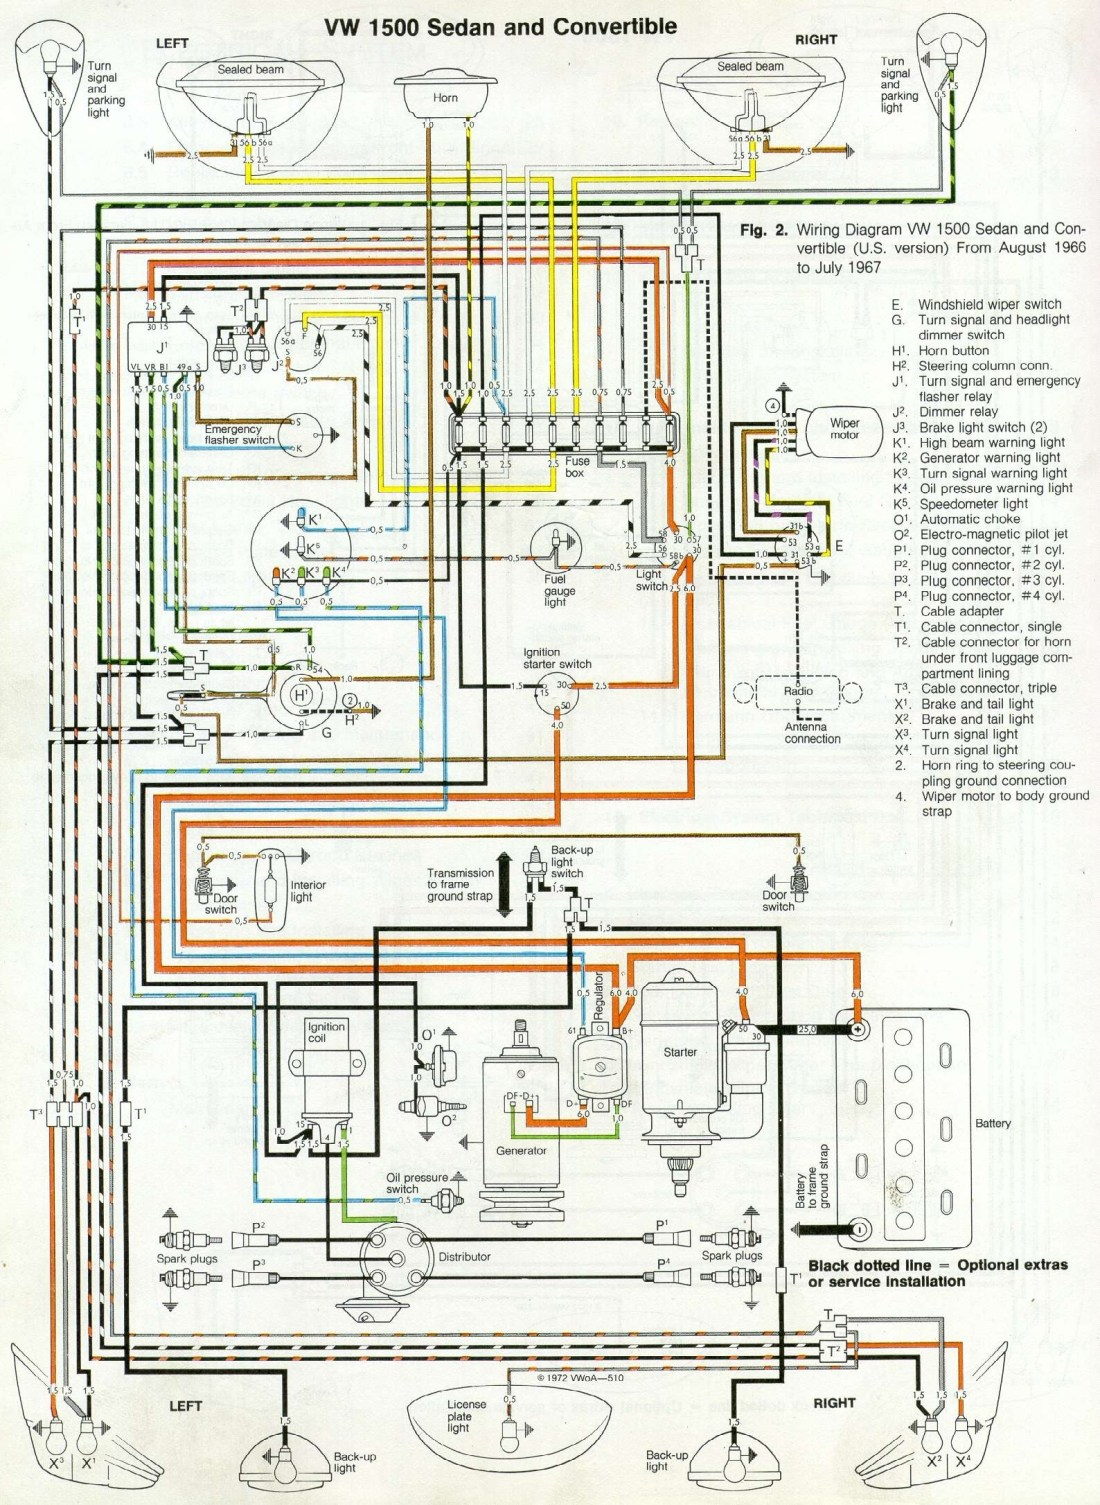 67 Beetle Wiring Diagram – U.S Version – 1967 VW Beetle1967 VW Beetle